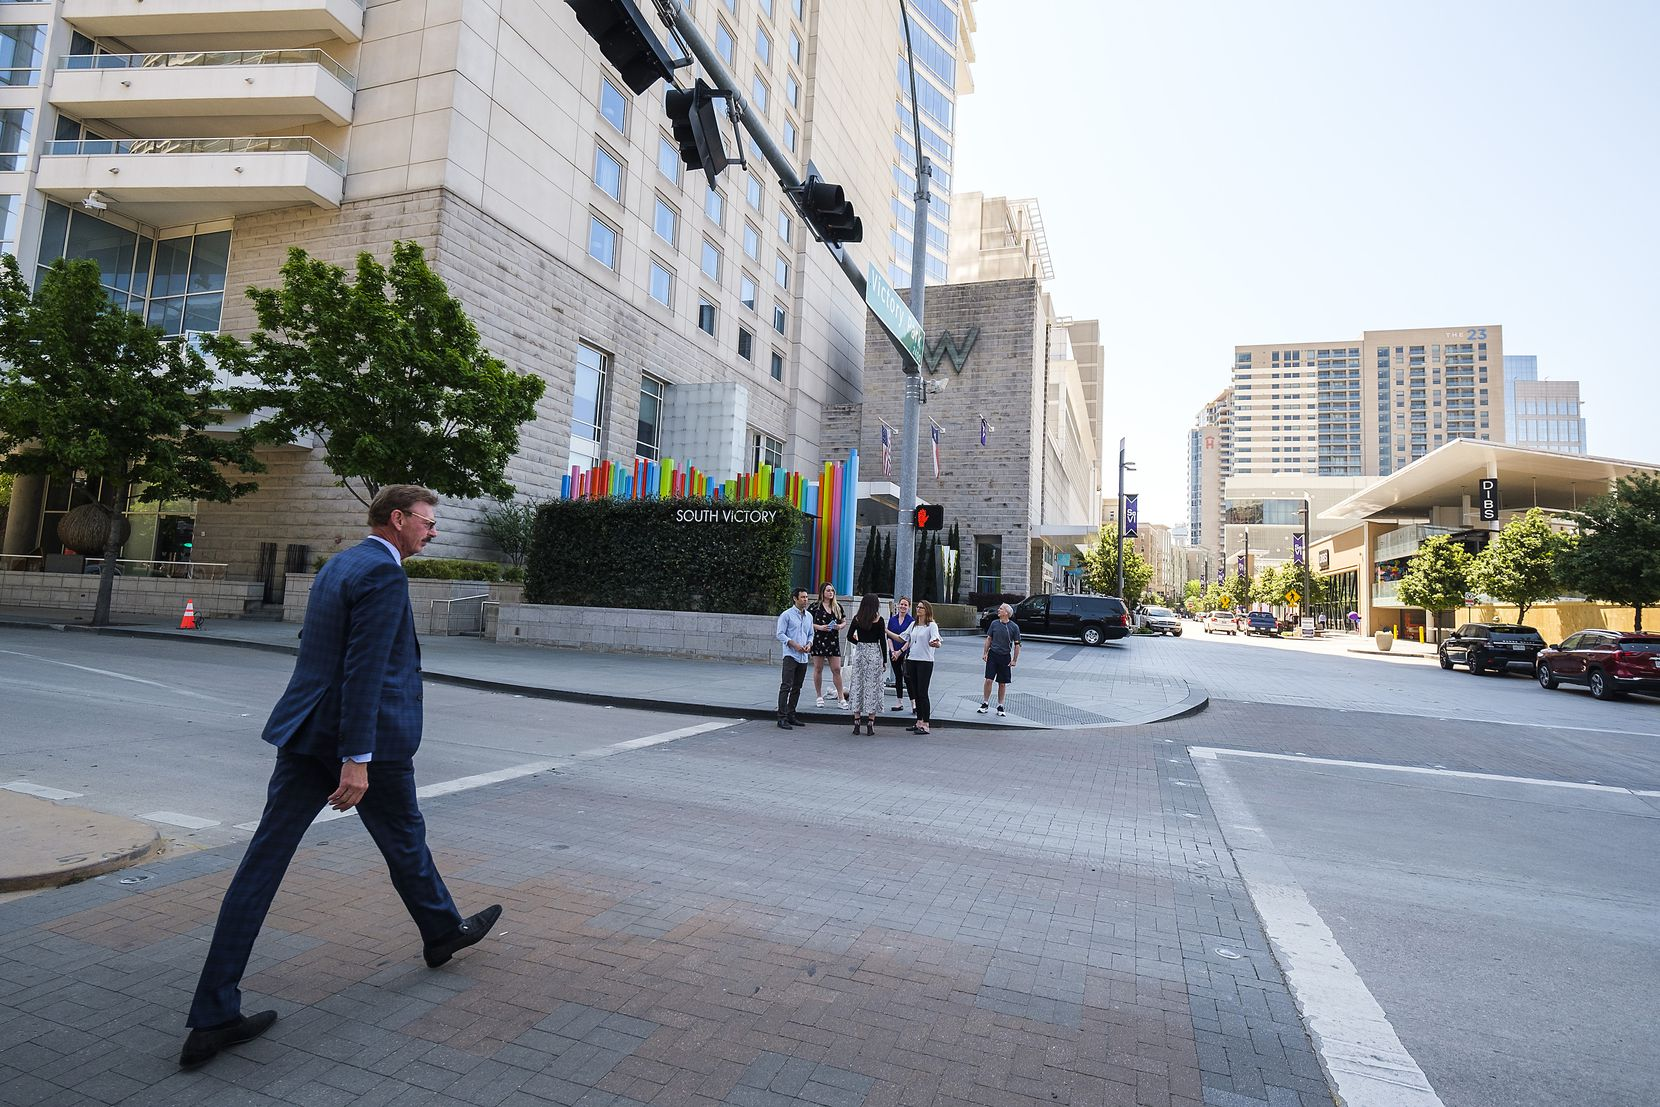 Victory Park president and owner Lothar Estein crosses Olive Street as he walks along Victory Park Lane after a ceremony marking the completion of the new retail street at Victory Park in Dallas.